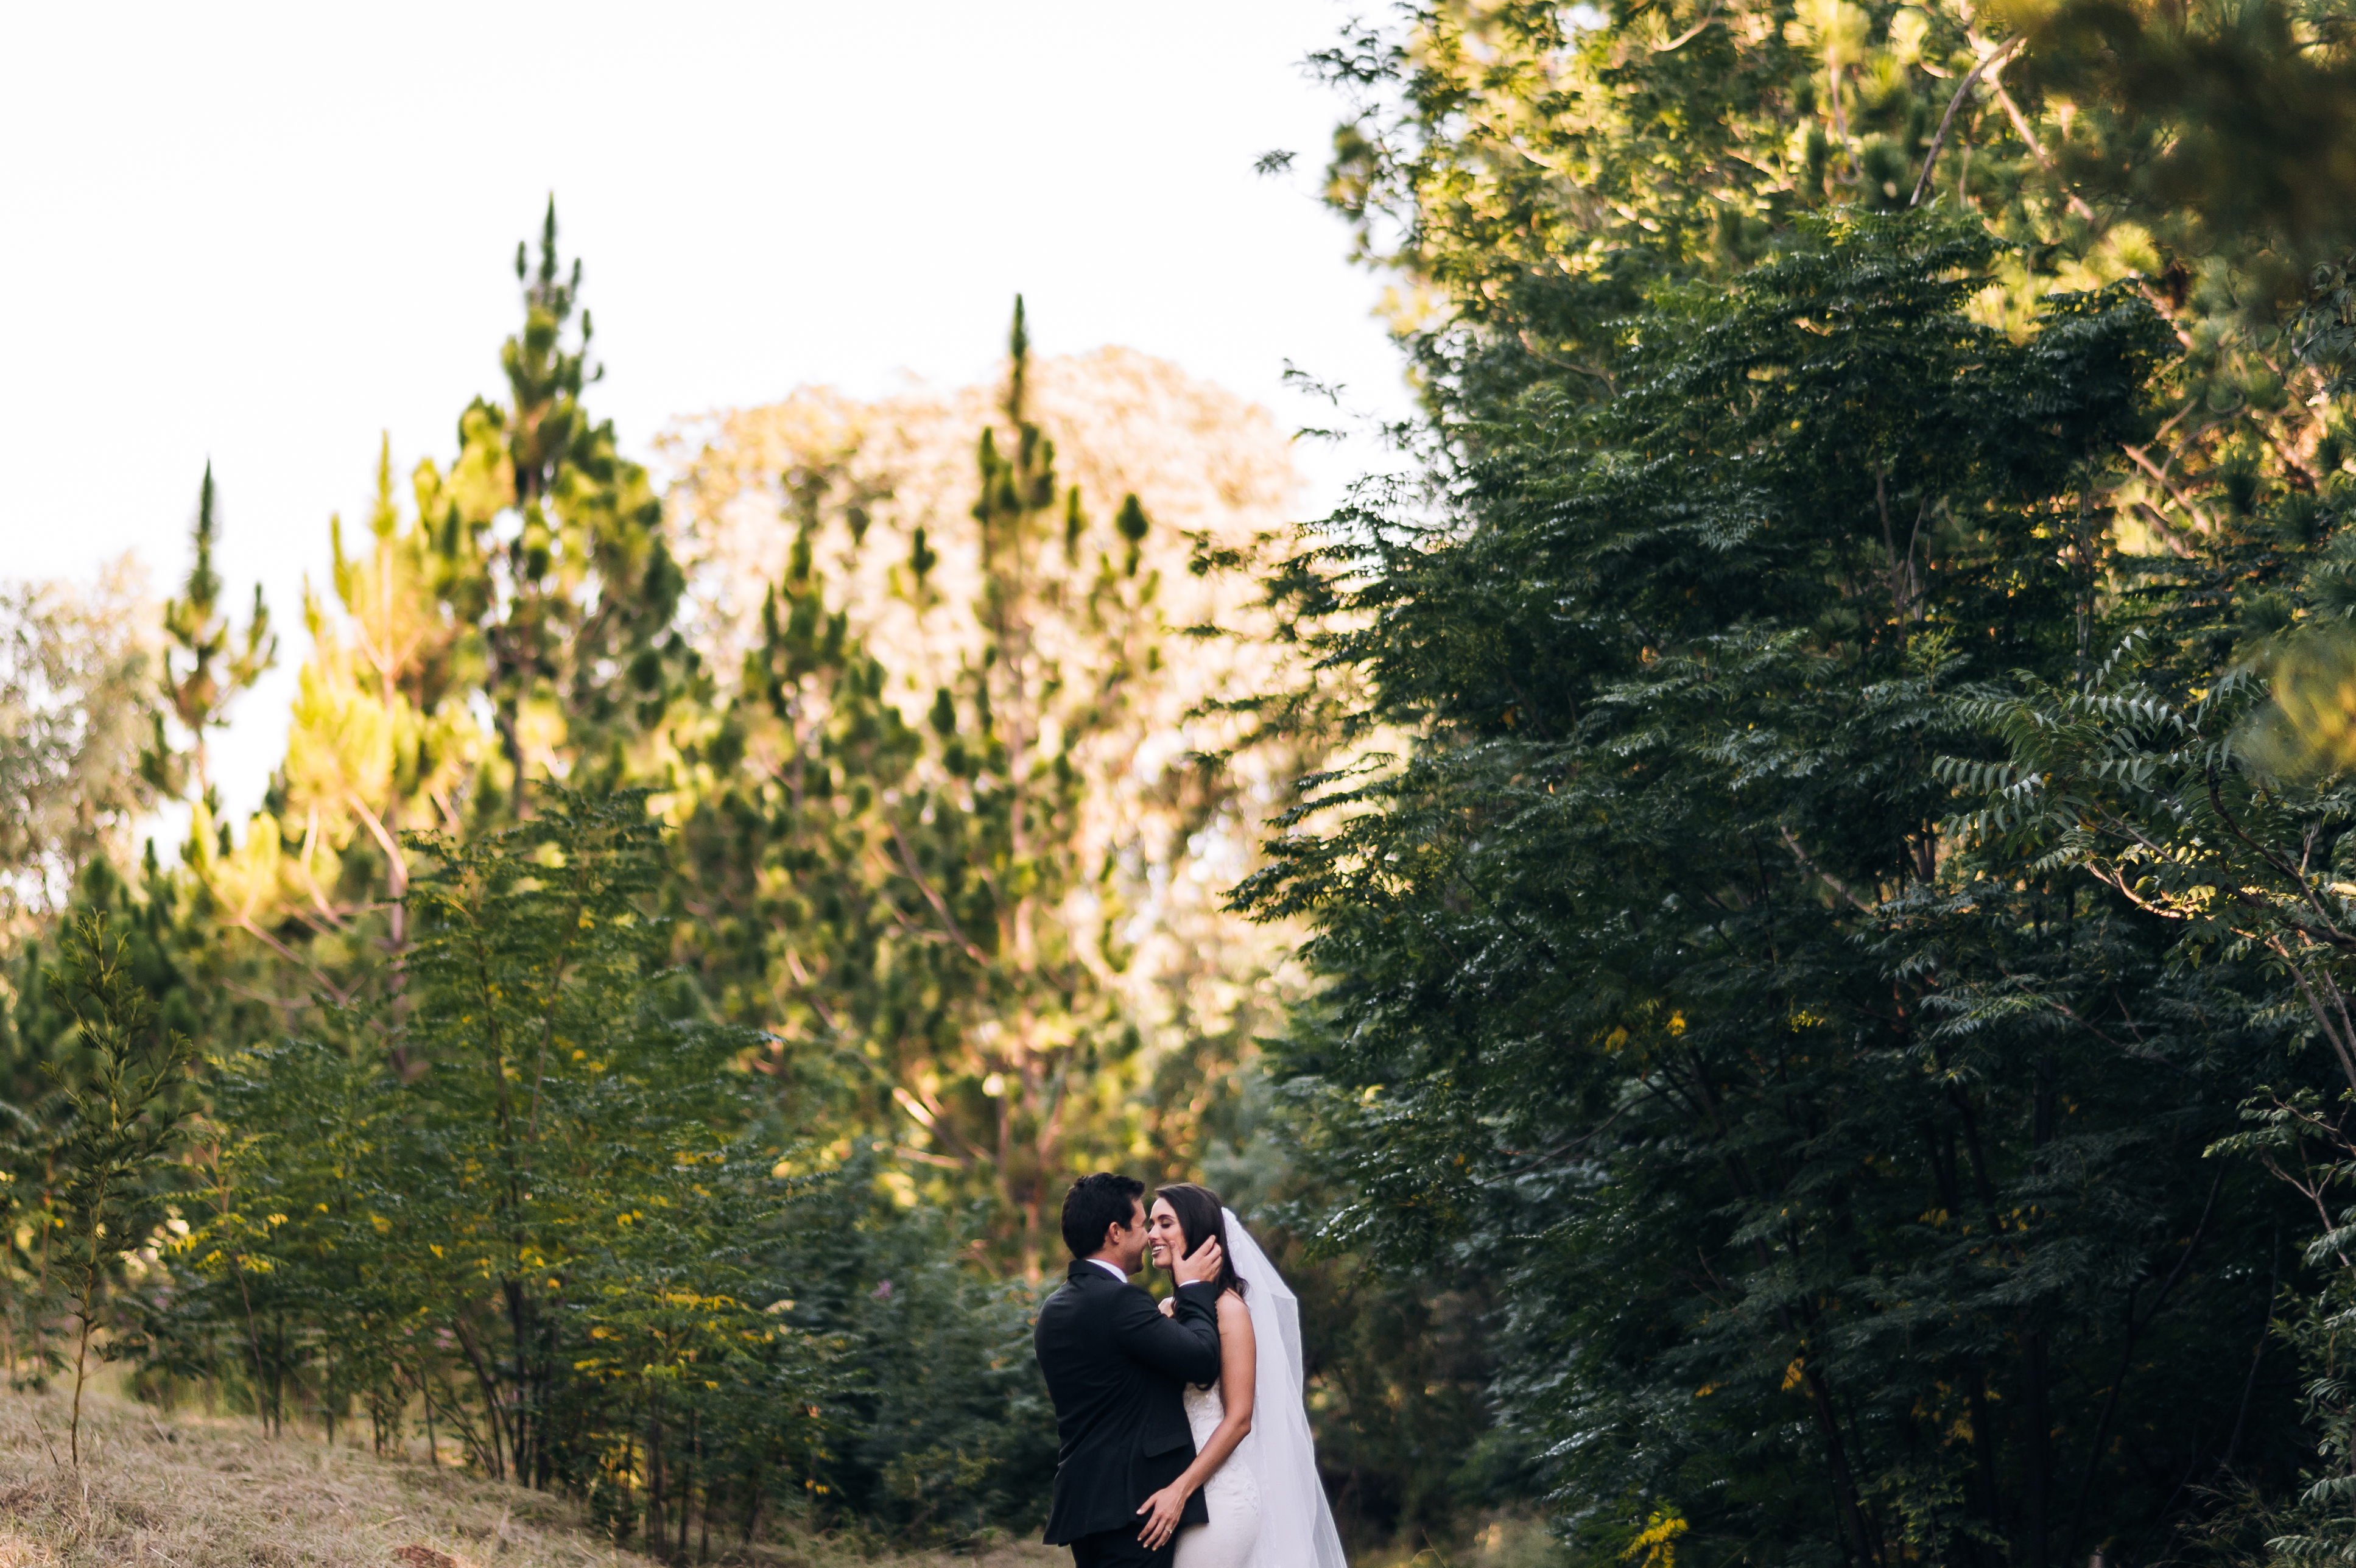 Riccardo & Tamryn_AndStory_TheCouple071